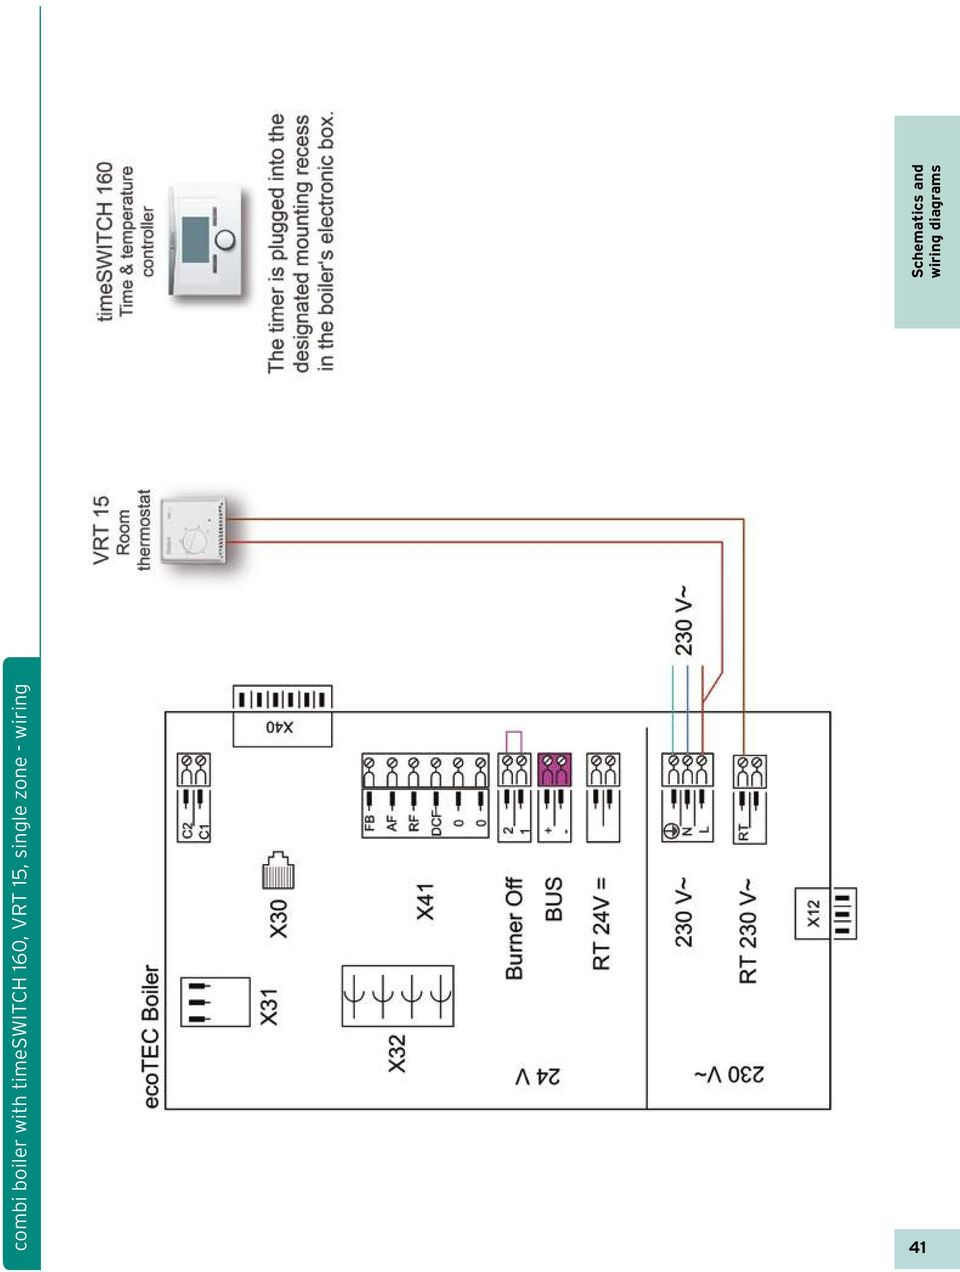 Why Vaillant Because The Ecotec Delivers Day In Day Out Vaillant Ecotec Boiler Range The Technical Brochure Pdf Free Download